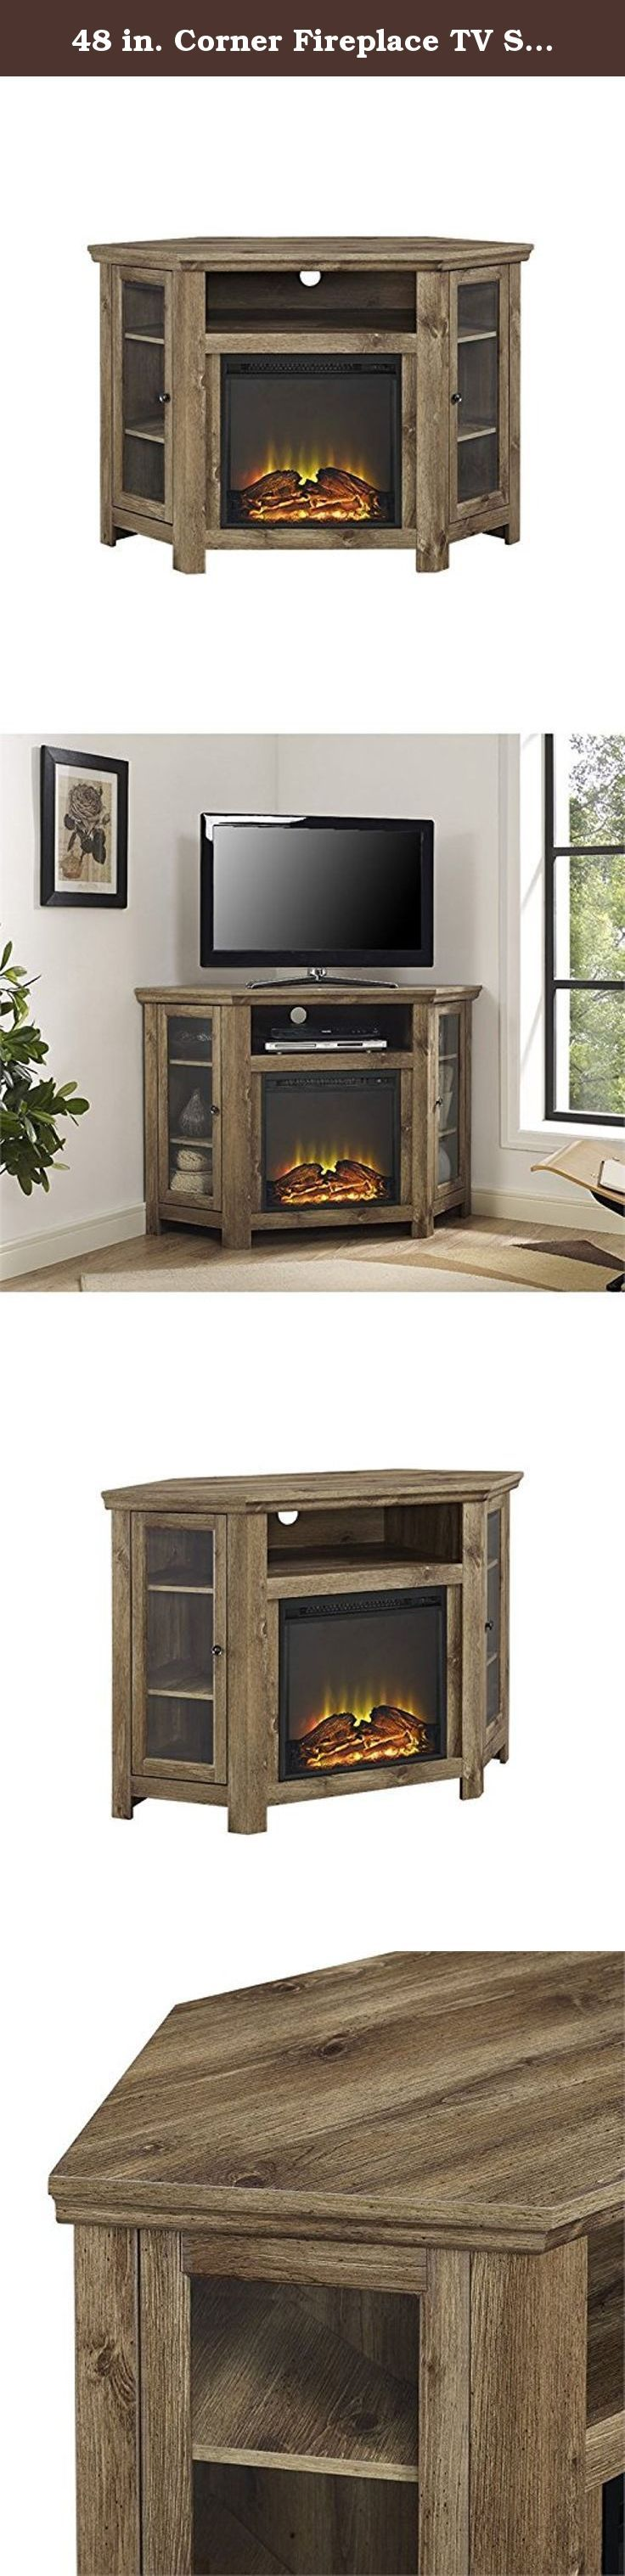 48 in corner fireplace tv stand in barn wood finish includes